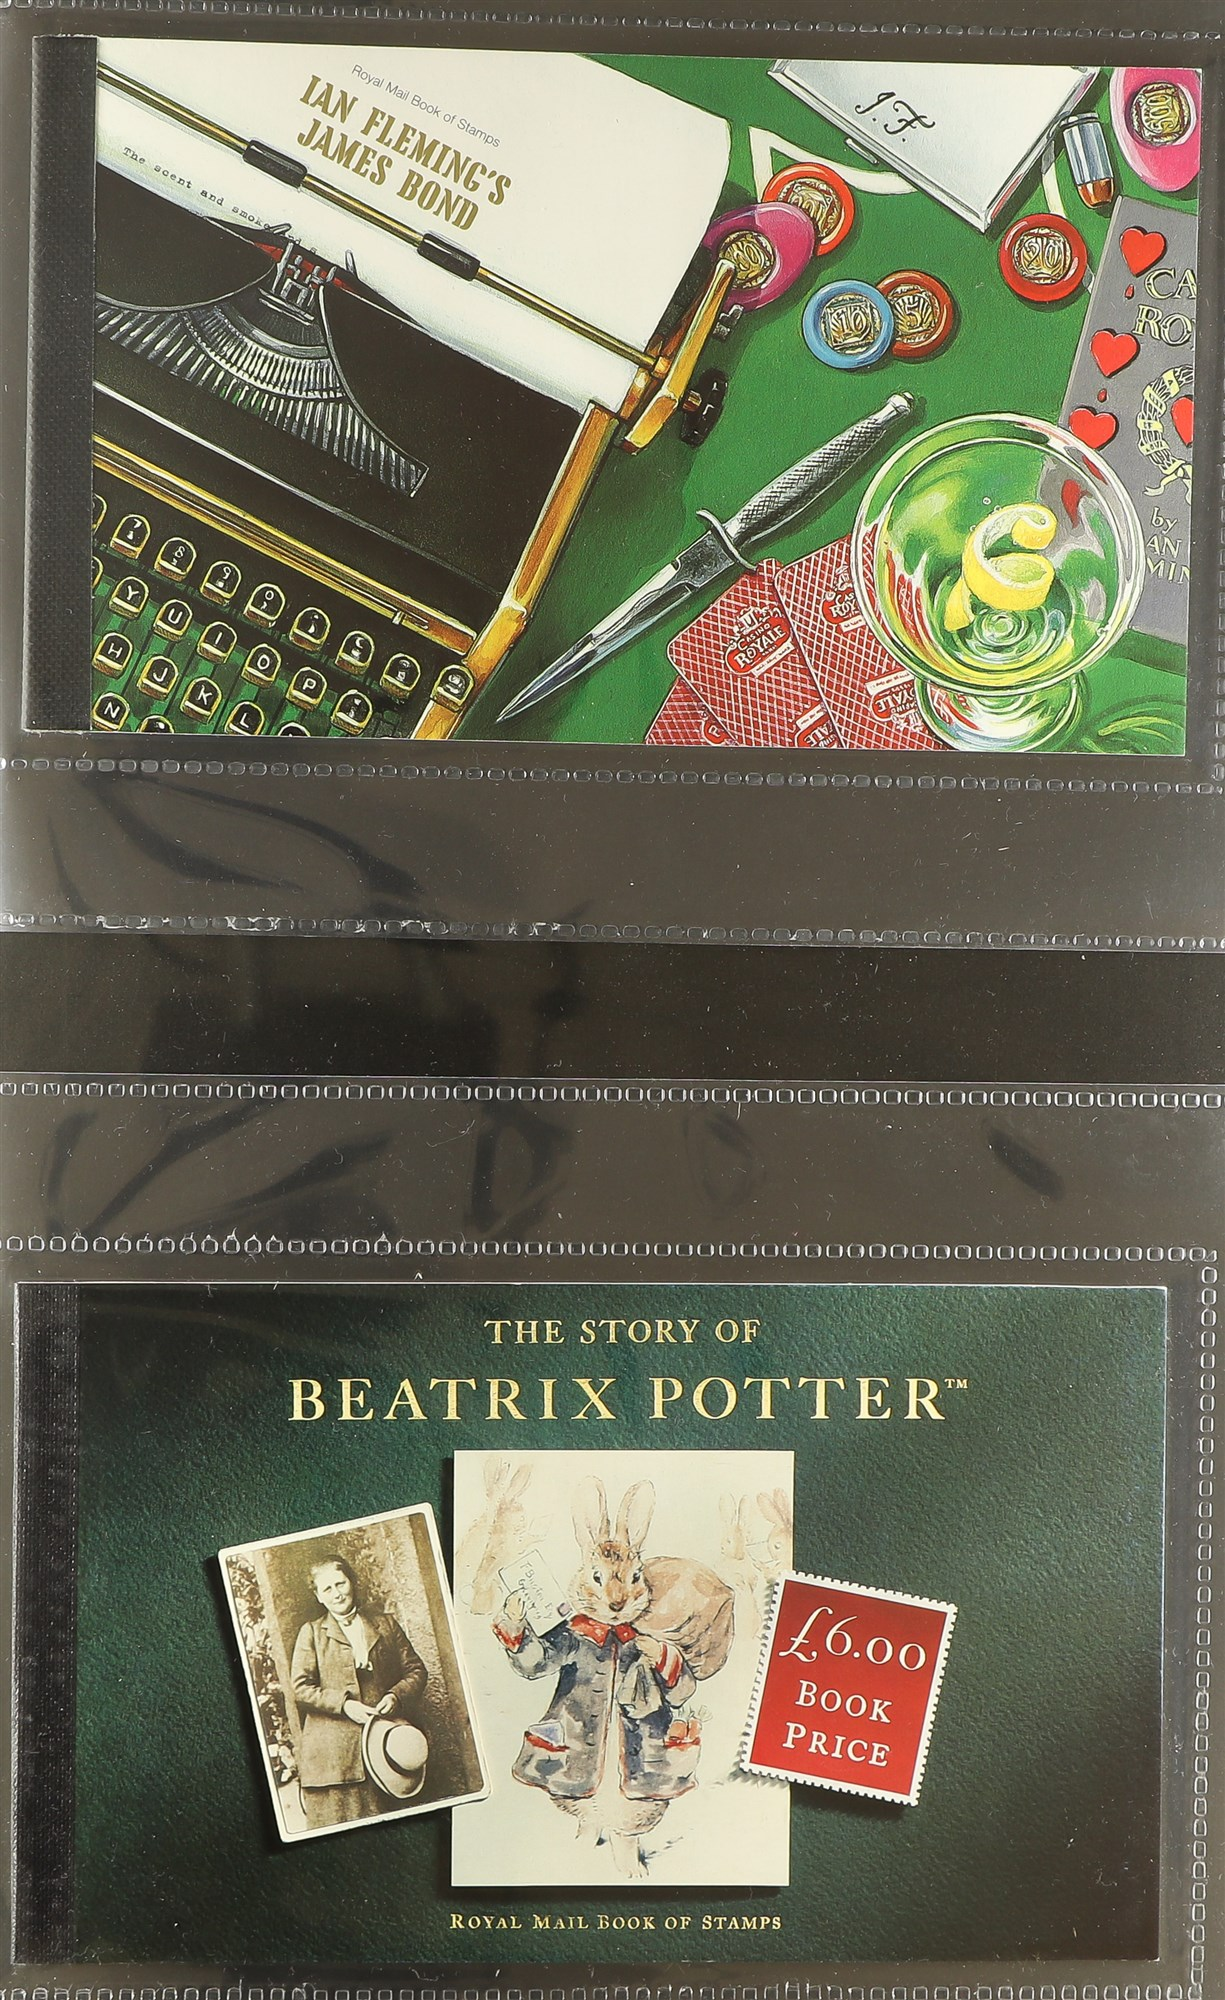 GB.ELIZABETH II PRESTIGE BOOKLET COLLECTION. The earliest being 'Beatrix Potter' (DX15) and the